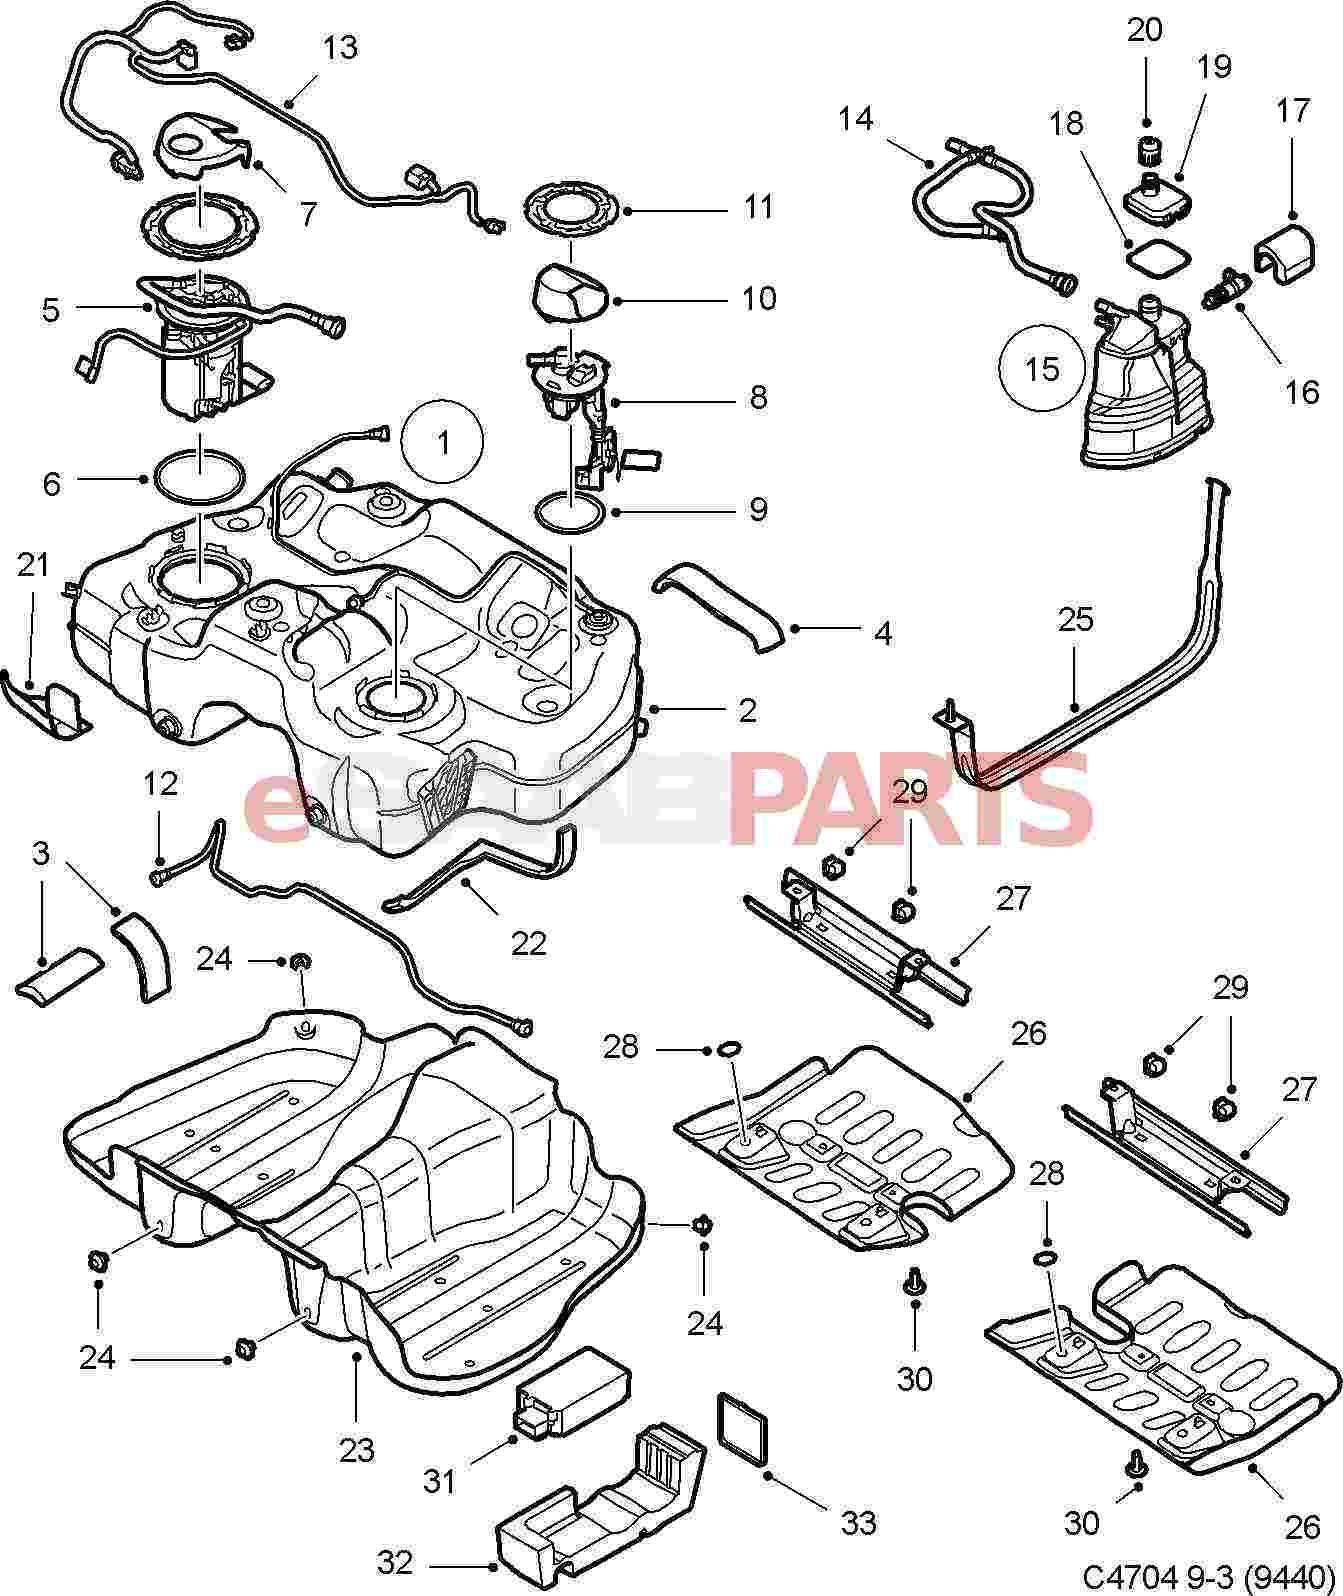 Saab 9 3 V6 Engine Diagram also Viewtopic moreover Saab 95 Engine Diagram furthermore Saab 9 5 Tuning likewise 2015 Volkswagen Timing Belt Or Chain. on saab 9 3 aero turbo